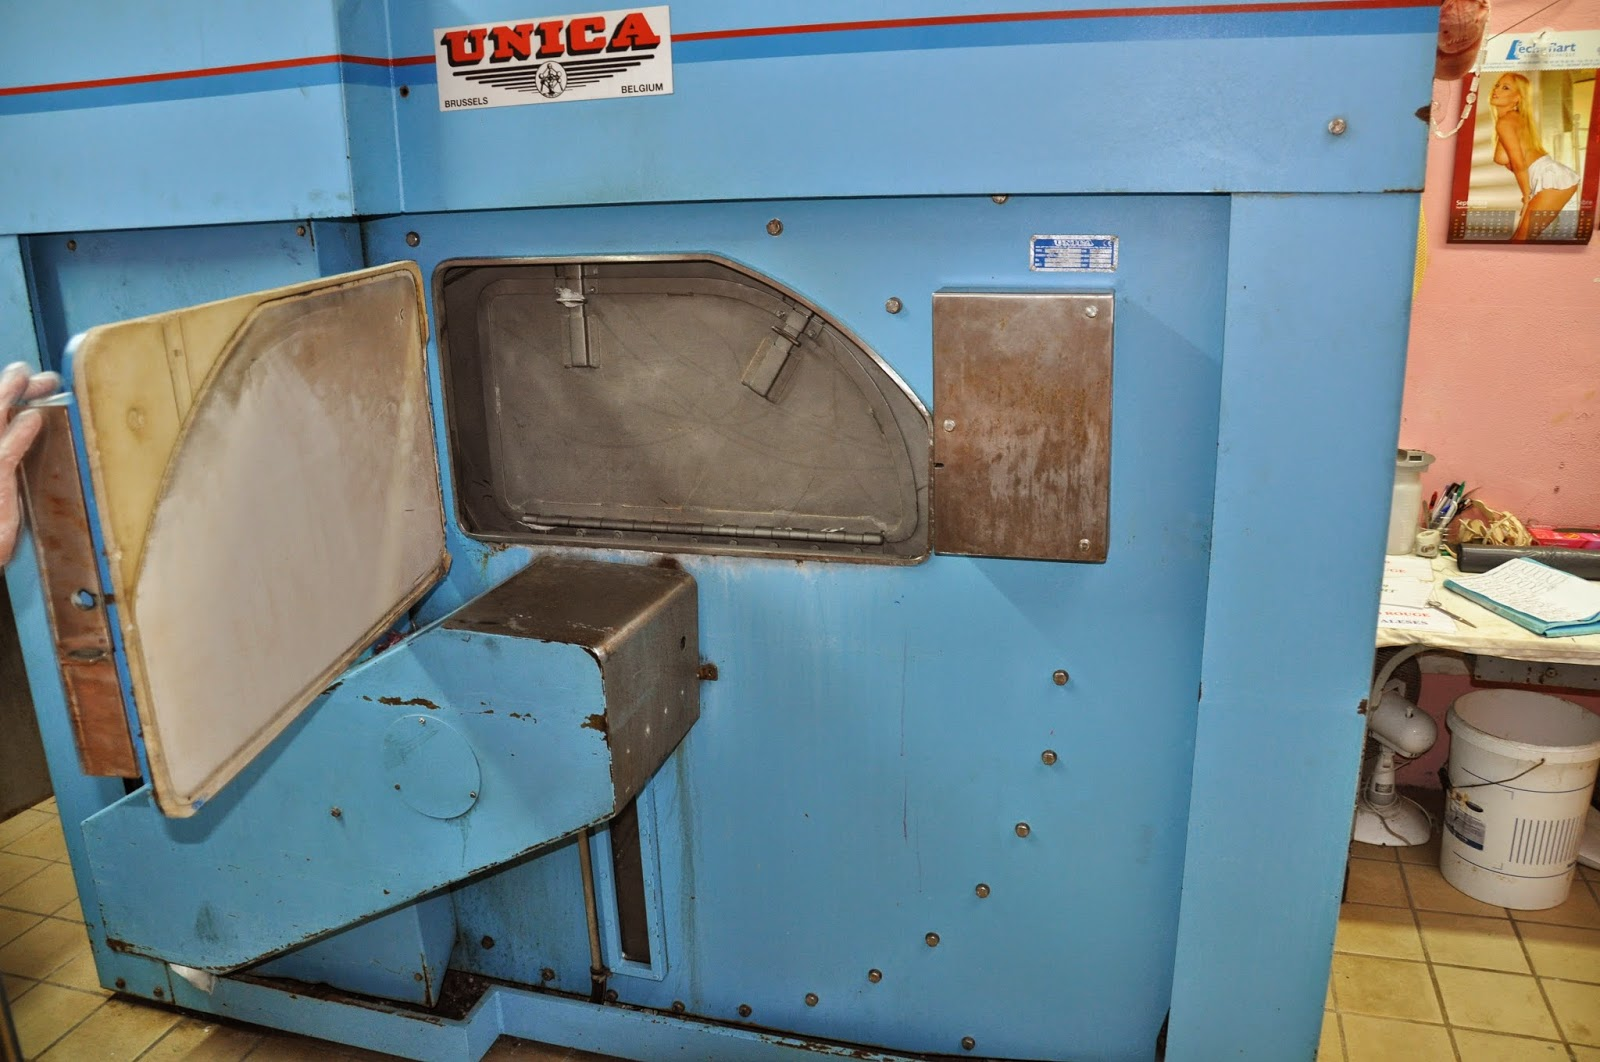 Unica washer 150kg 3 pockets barrier year 2007